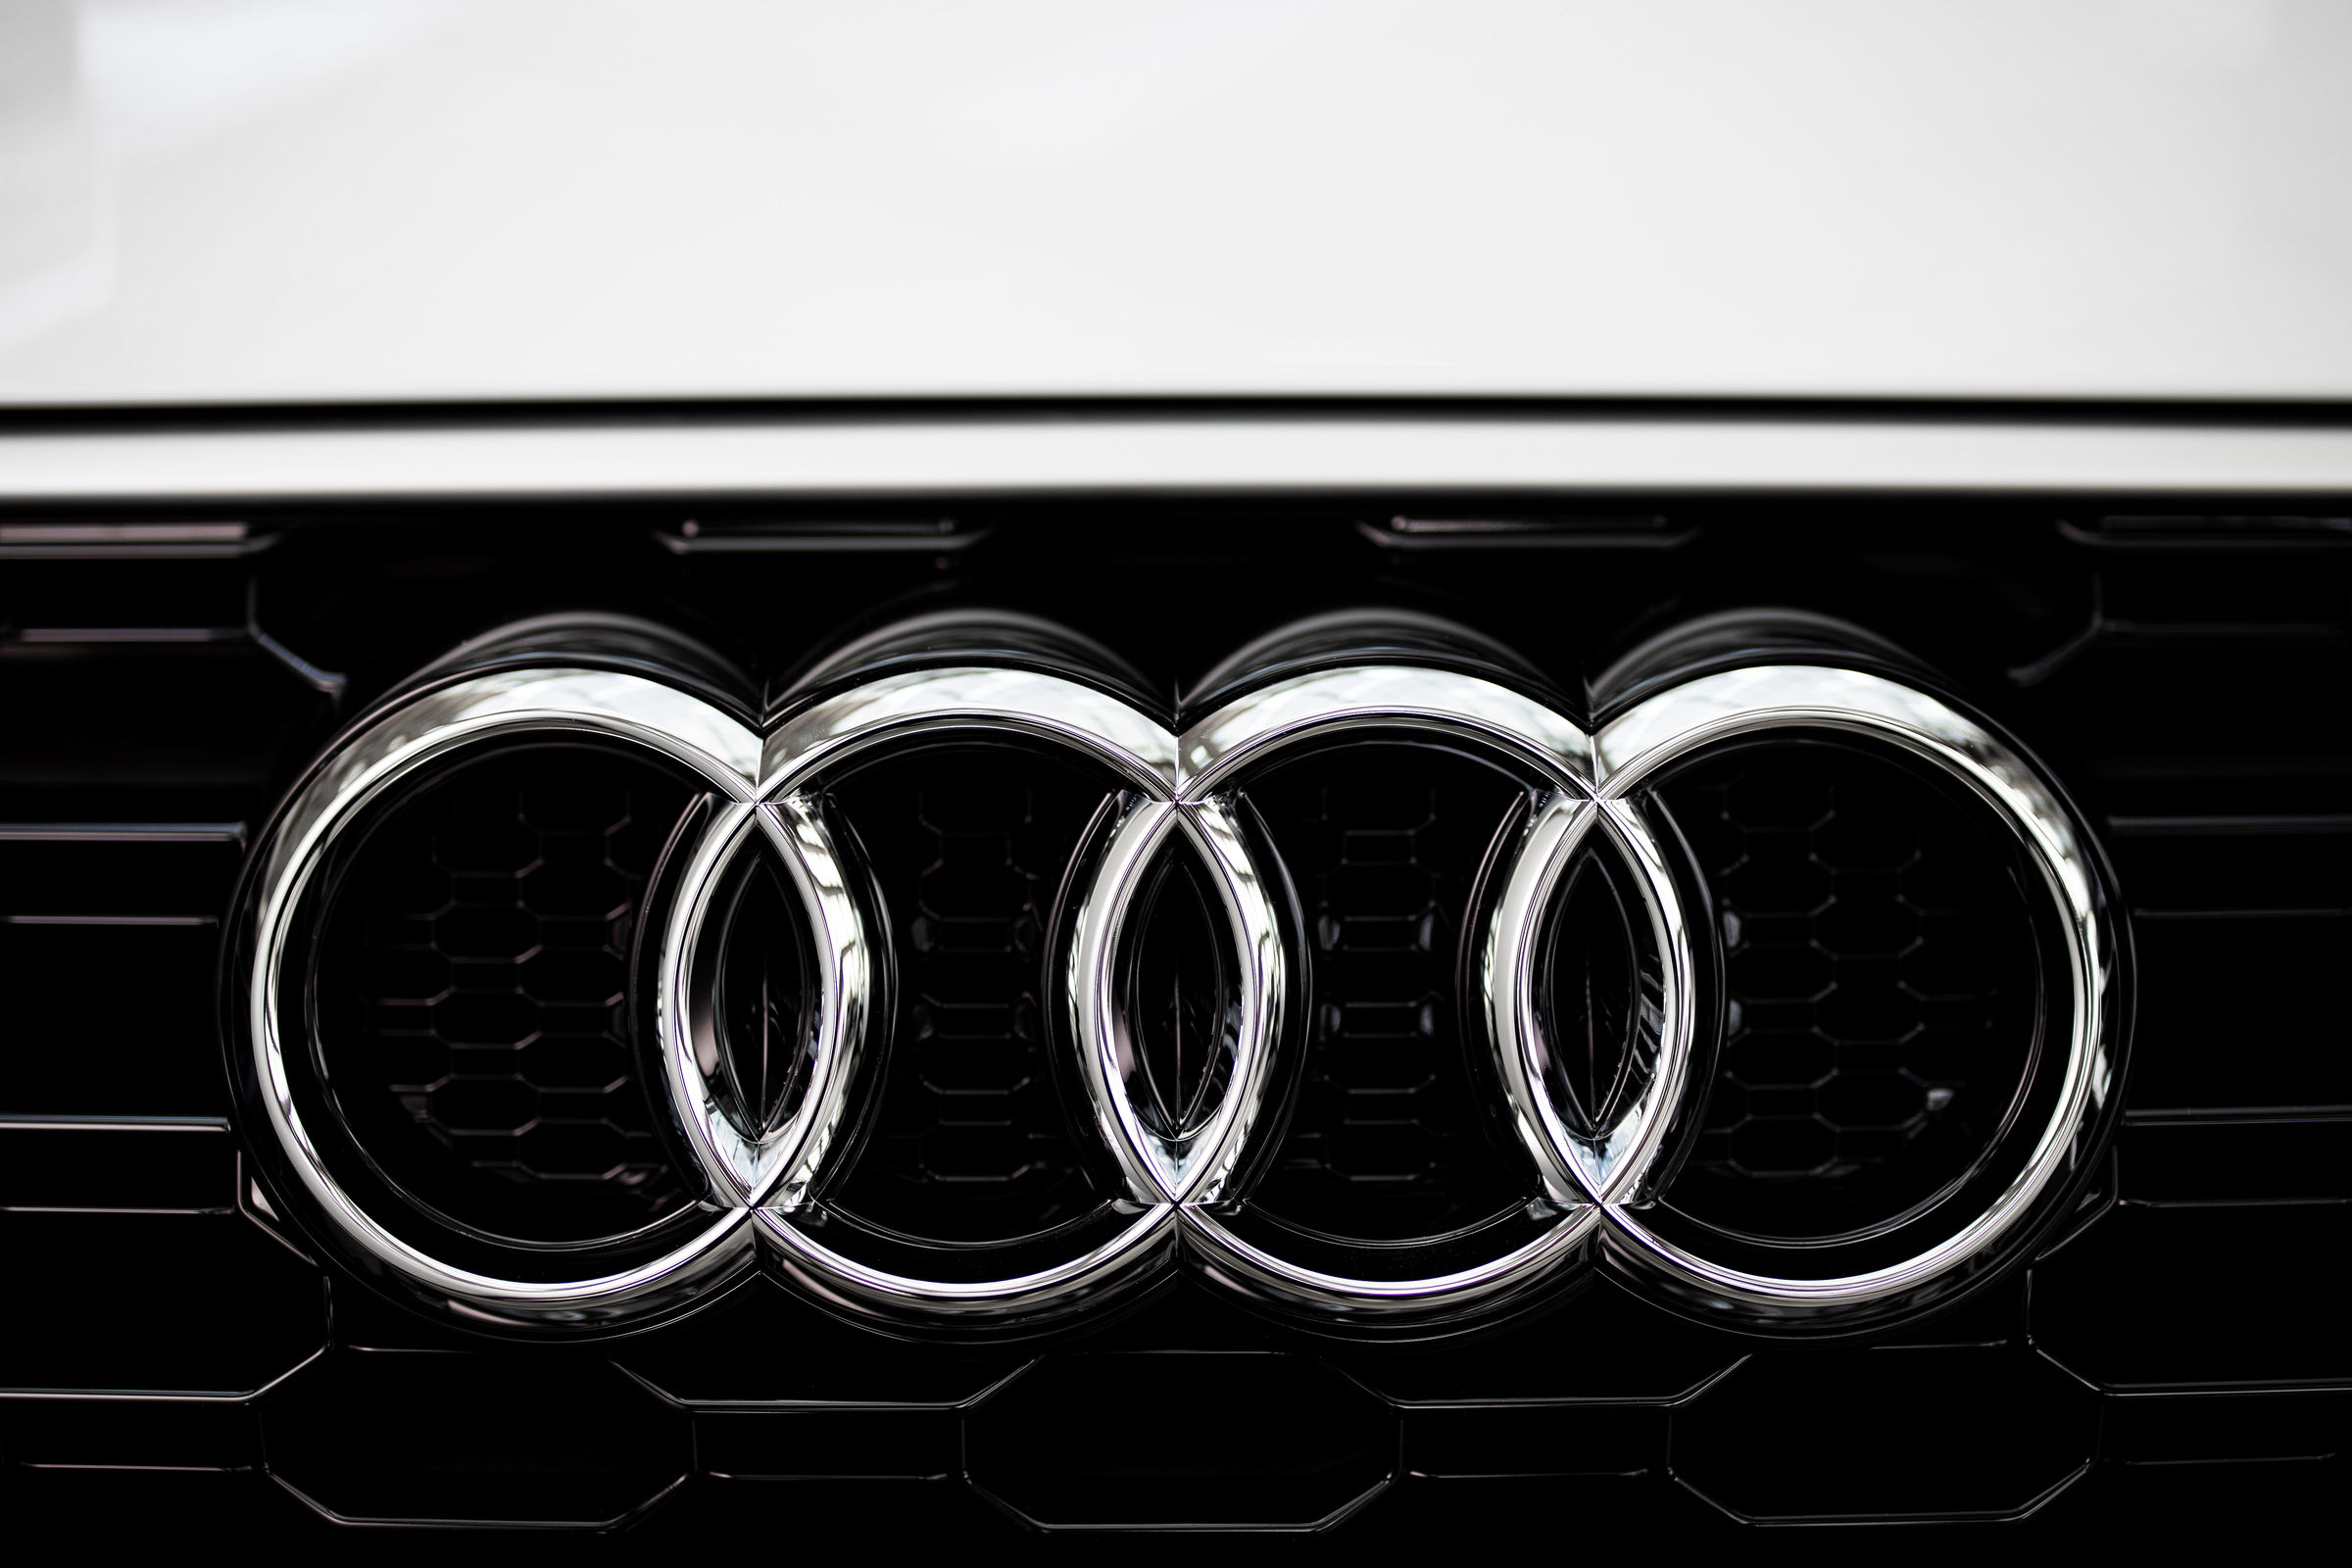 Audi extends new car warranty and extended warranty as a goodwill gesture - Image 1